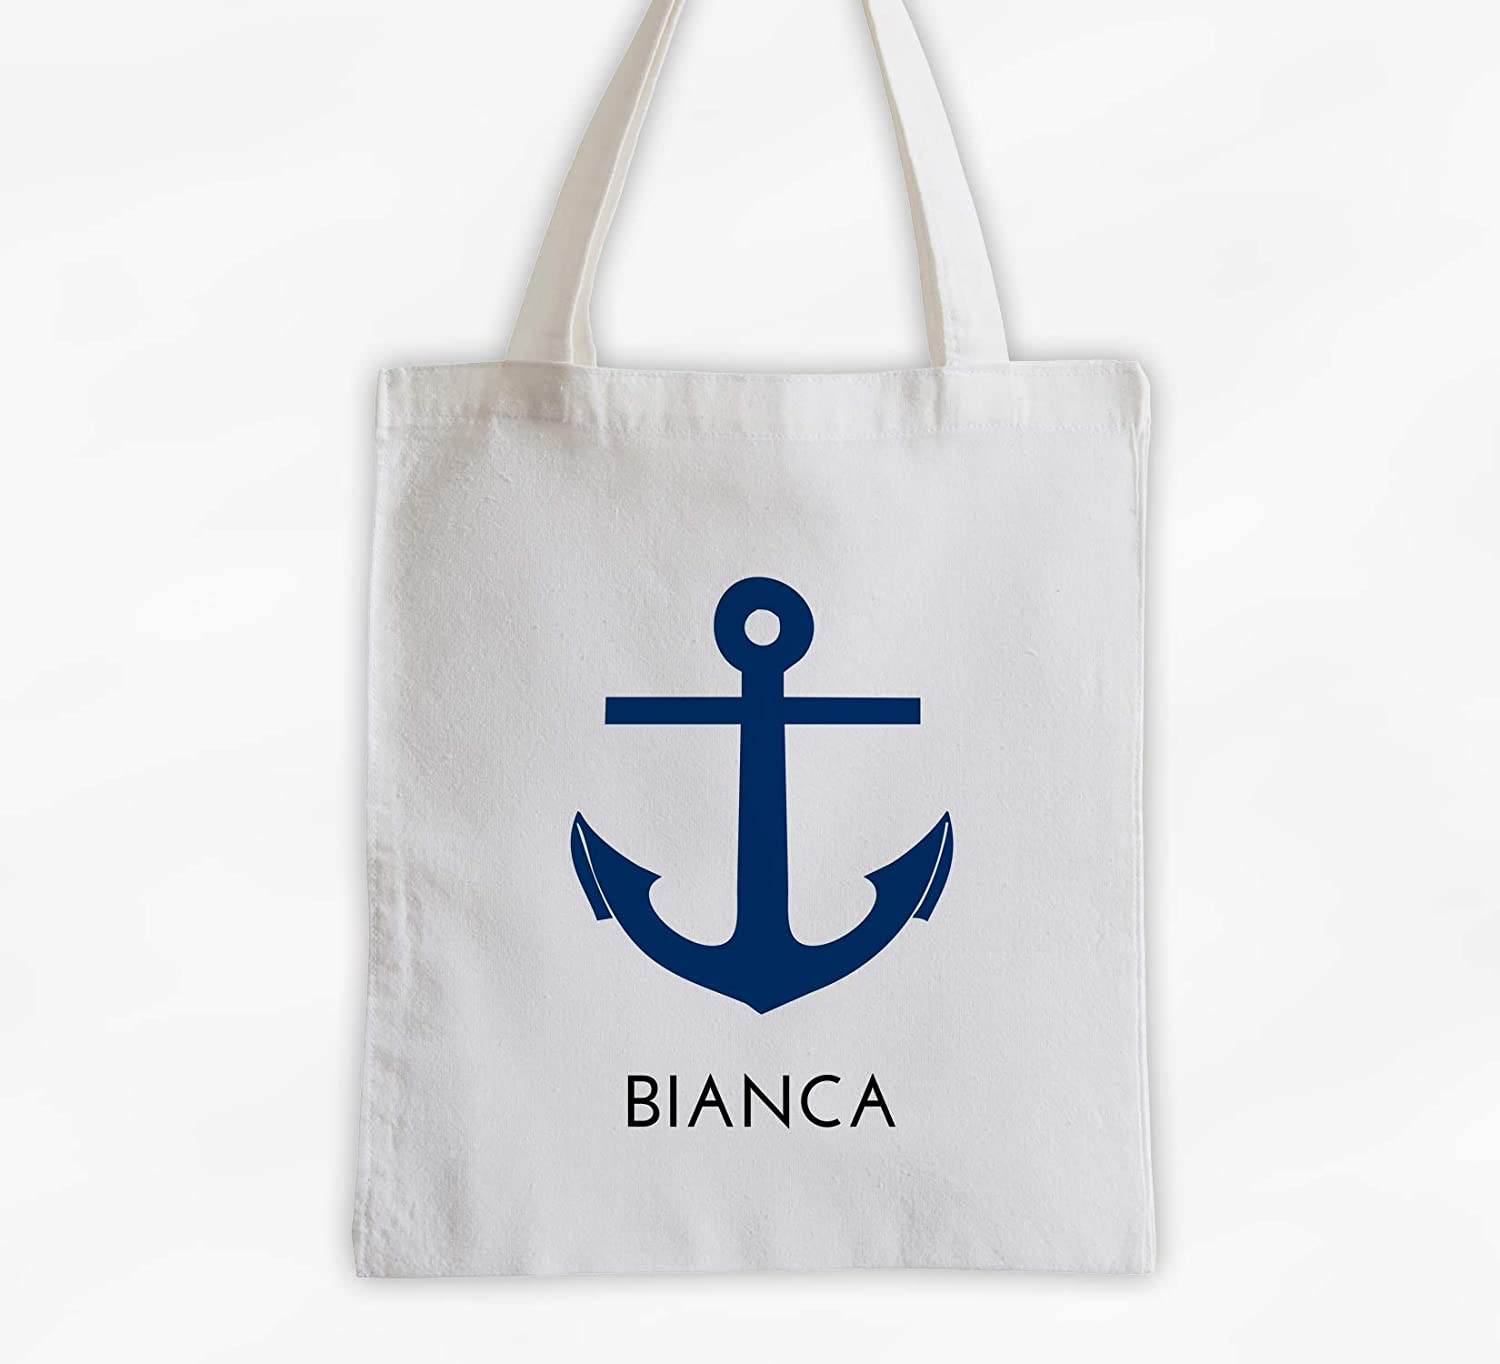 Anchor Nautical Cotton Canvas Tote with Oklahoma City Mall Bag Personalized Max 67% OFF 3 Name